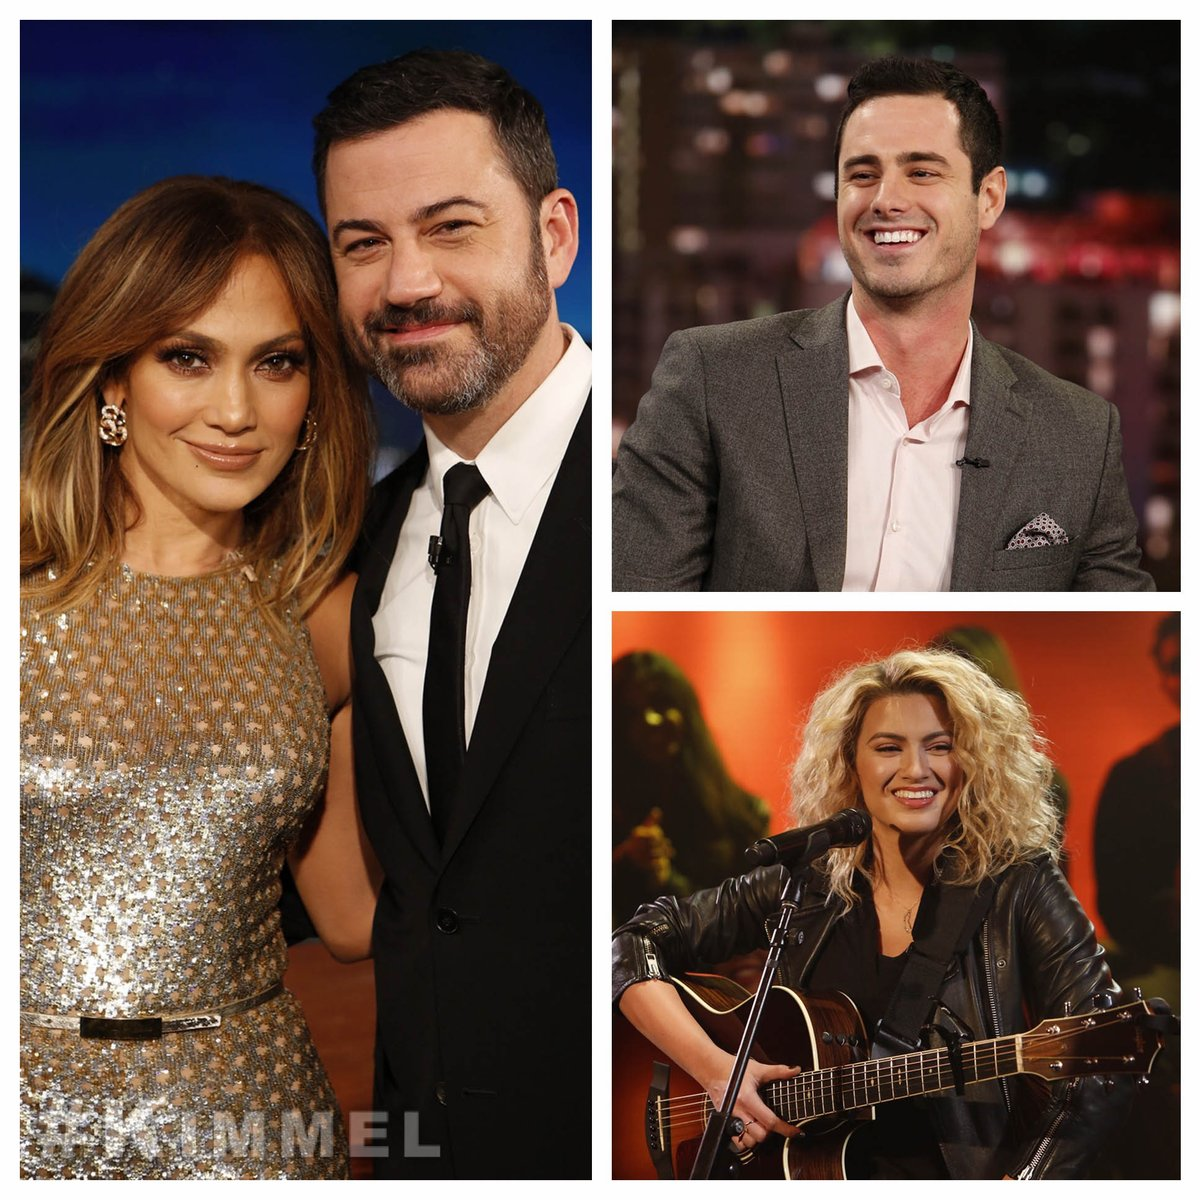 Kimmel -  The Bachelor 20 - Ben Higgins - Premier - Episode 1 - Discussion - *Sleuthing - Spoilers* - Page 28 CX7PPMFUwAE3Omn